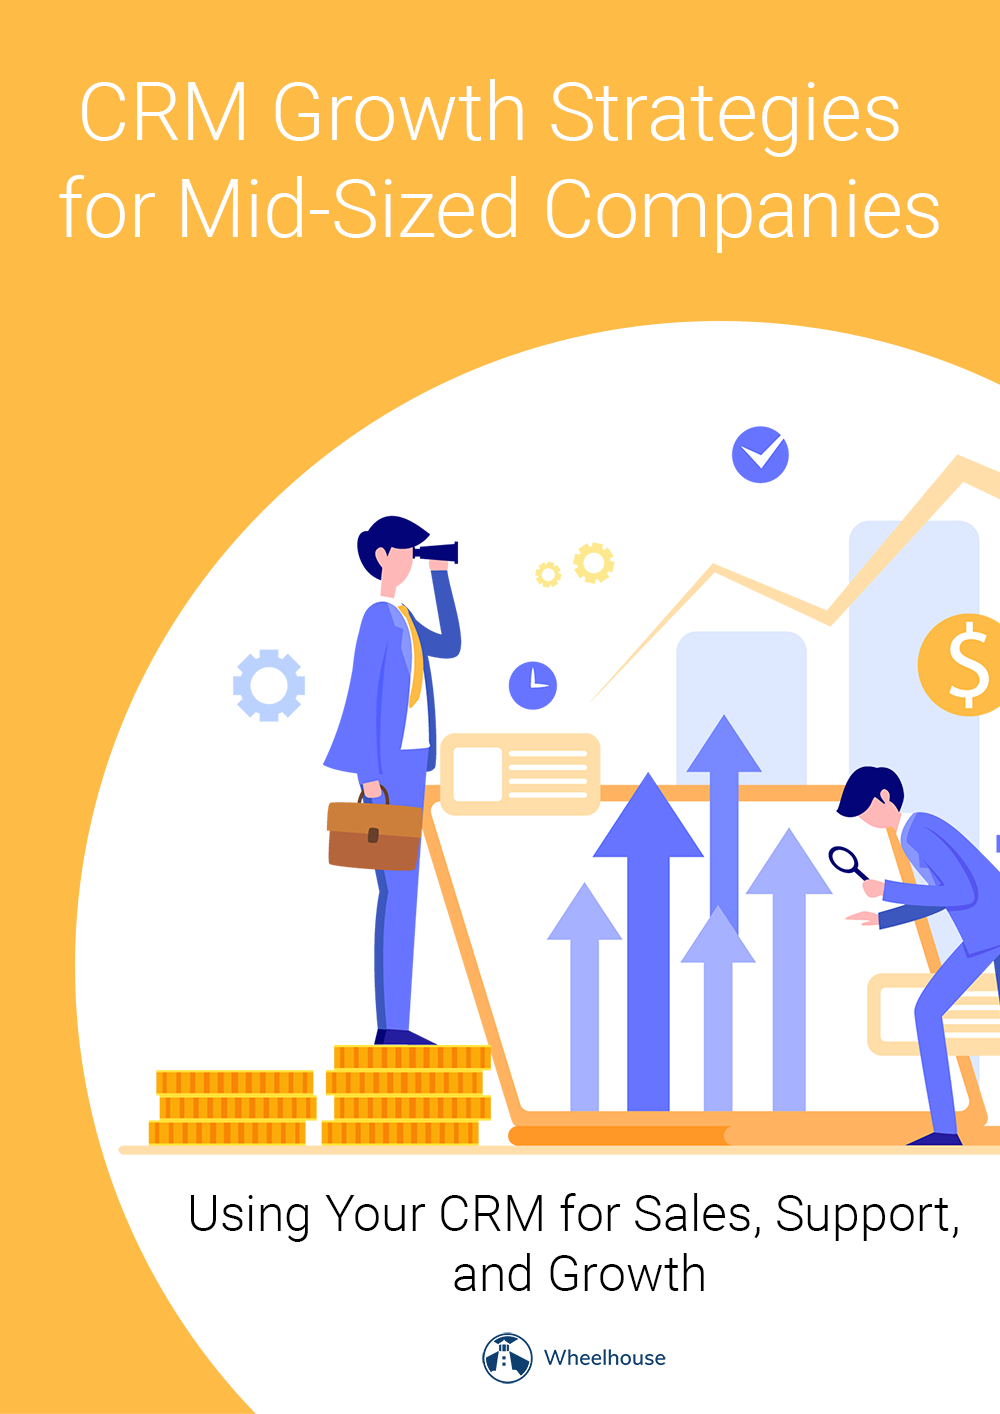 crm-growth-strategies-mid-sized-companies